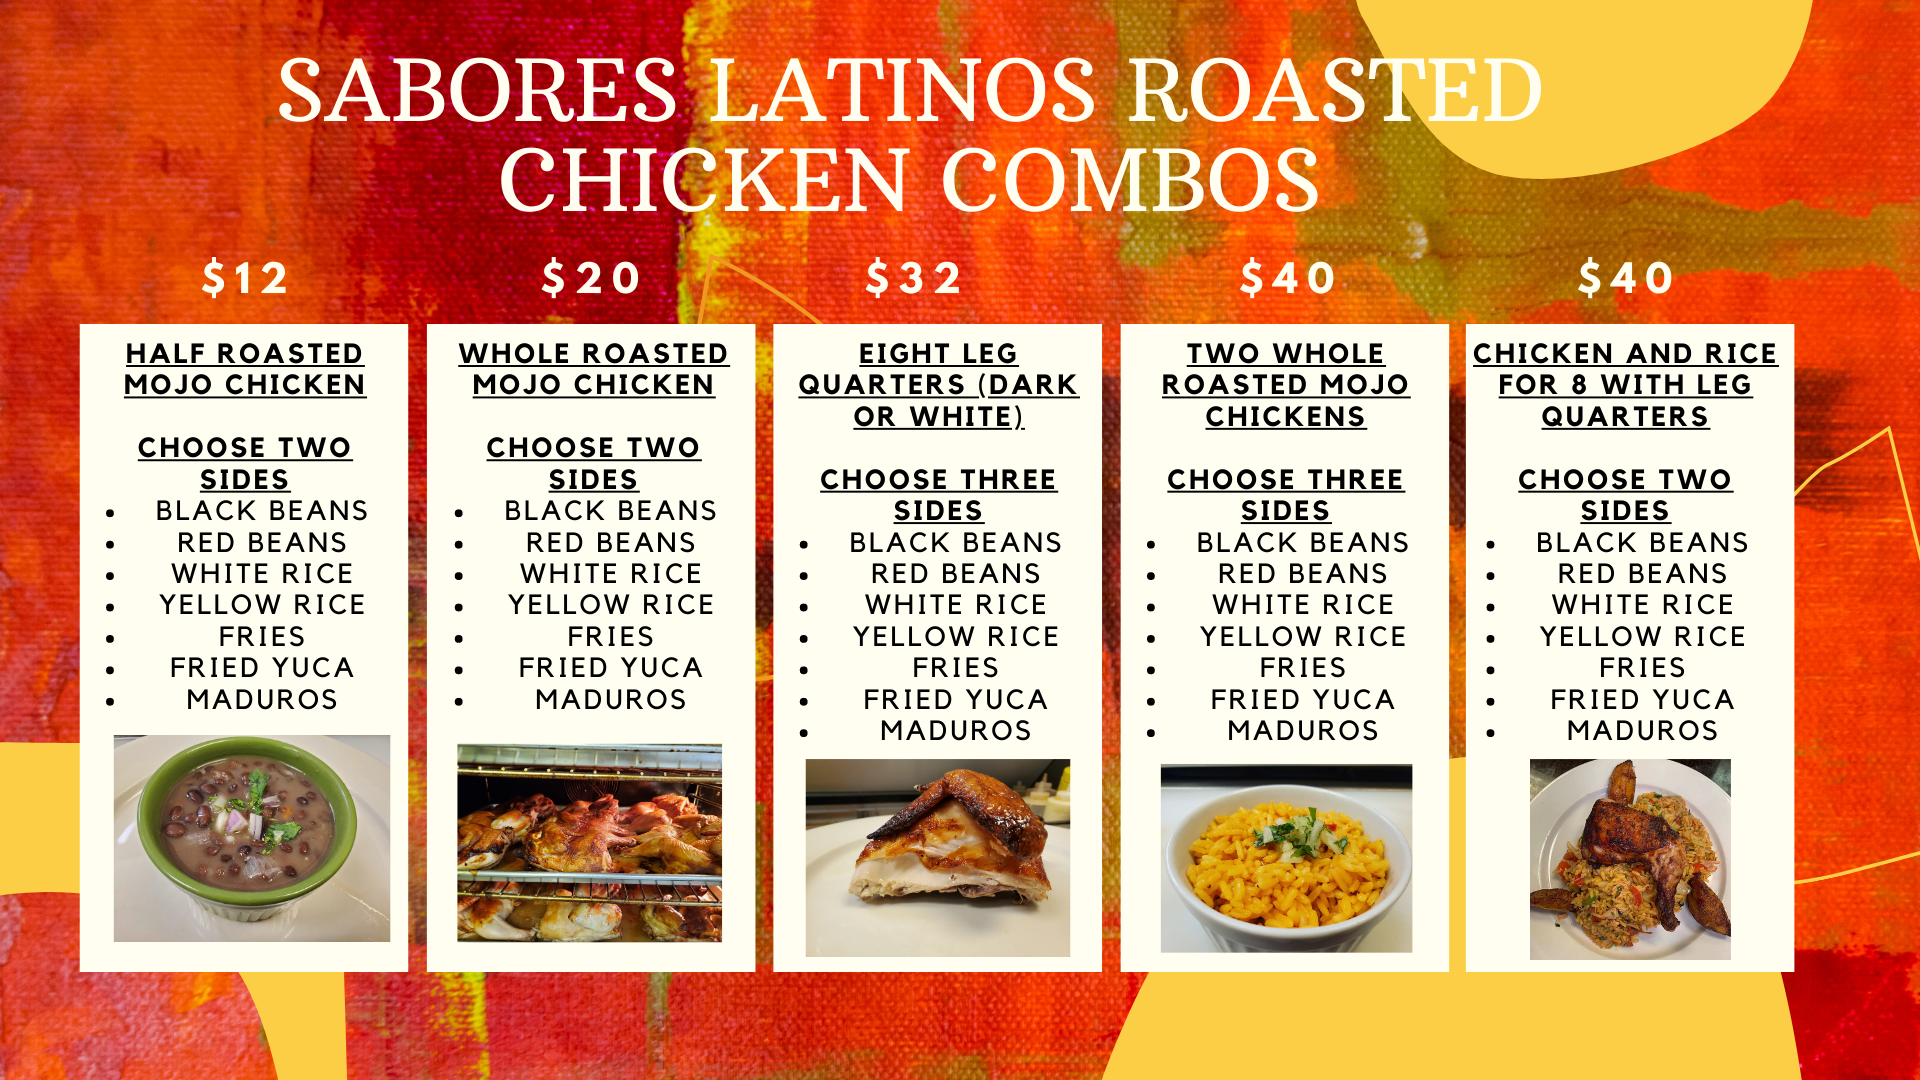 Sabores Latinos Roasted Chicken Combos. $12 half roasted mojo chicken. $20 whole roasted mojo chicken. $34 eight leg quarters (dark or white). $40 two whole roasted mojo chickens. $40 chicken and rice for 8 with leg quarters.